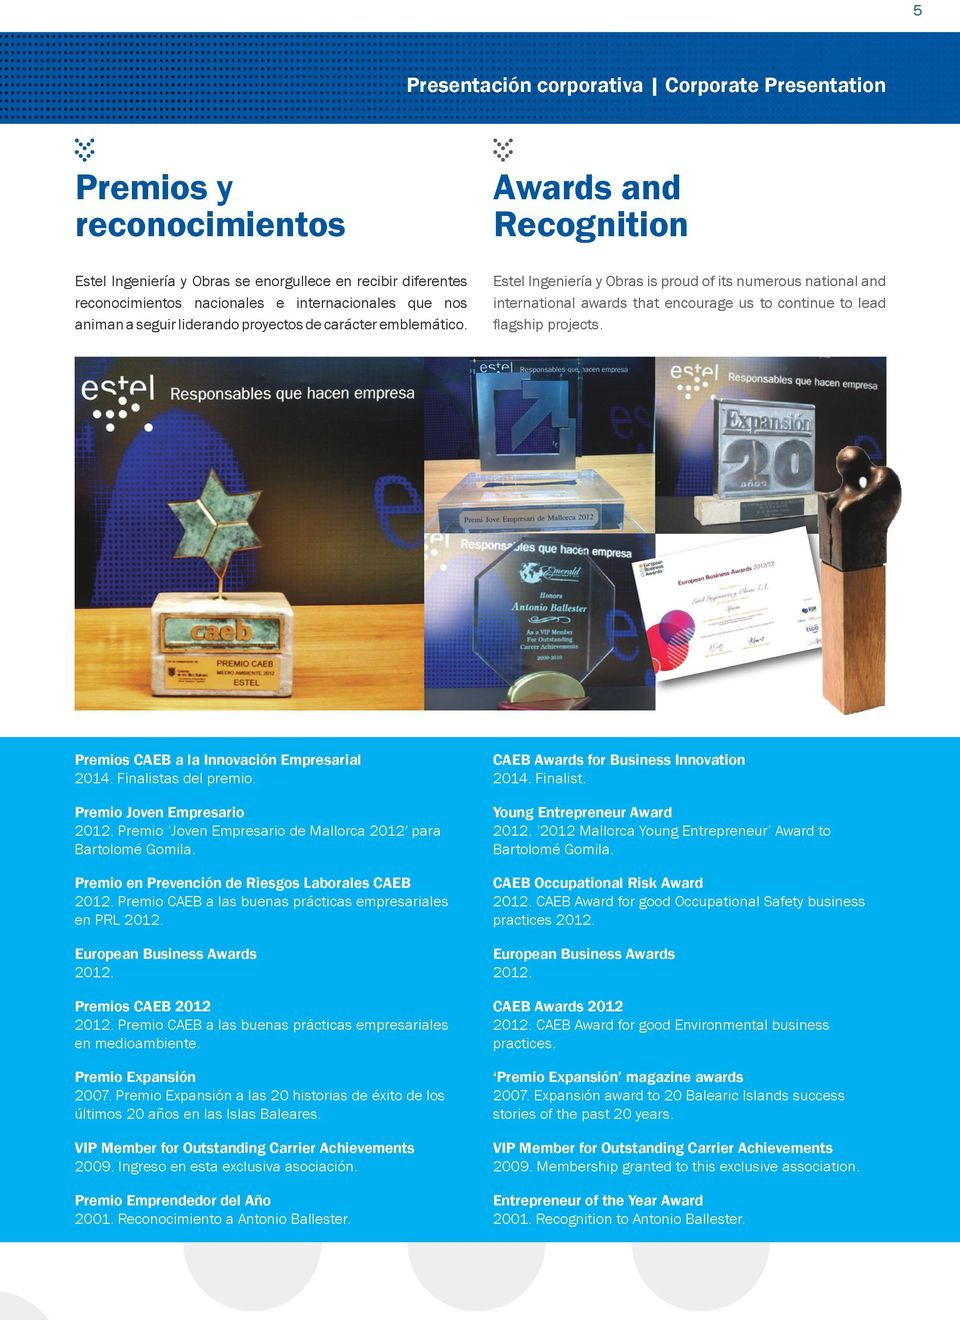 Awards and Recognition Estel Ingeniería y Obras is proud of its numerous national and international awards that encourage us to continue to lead flagship projects.